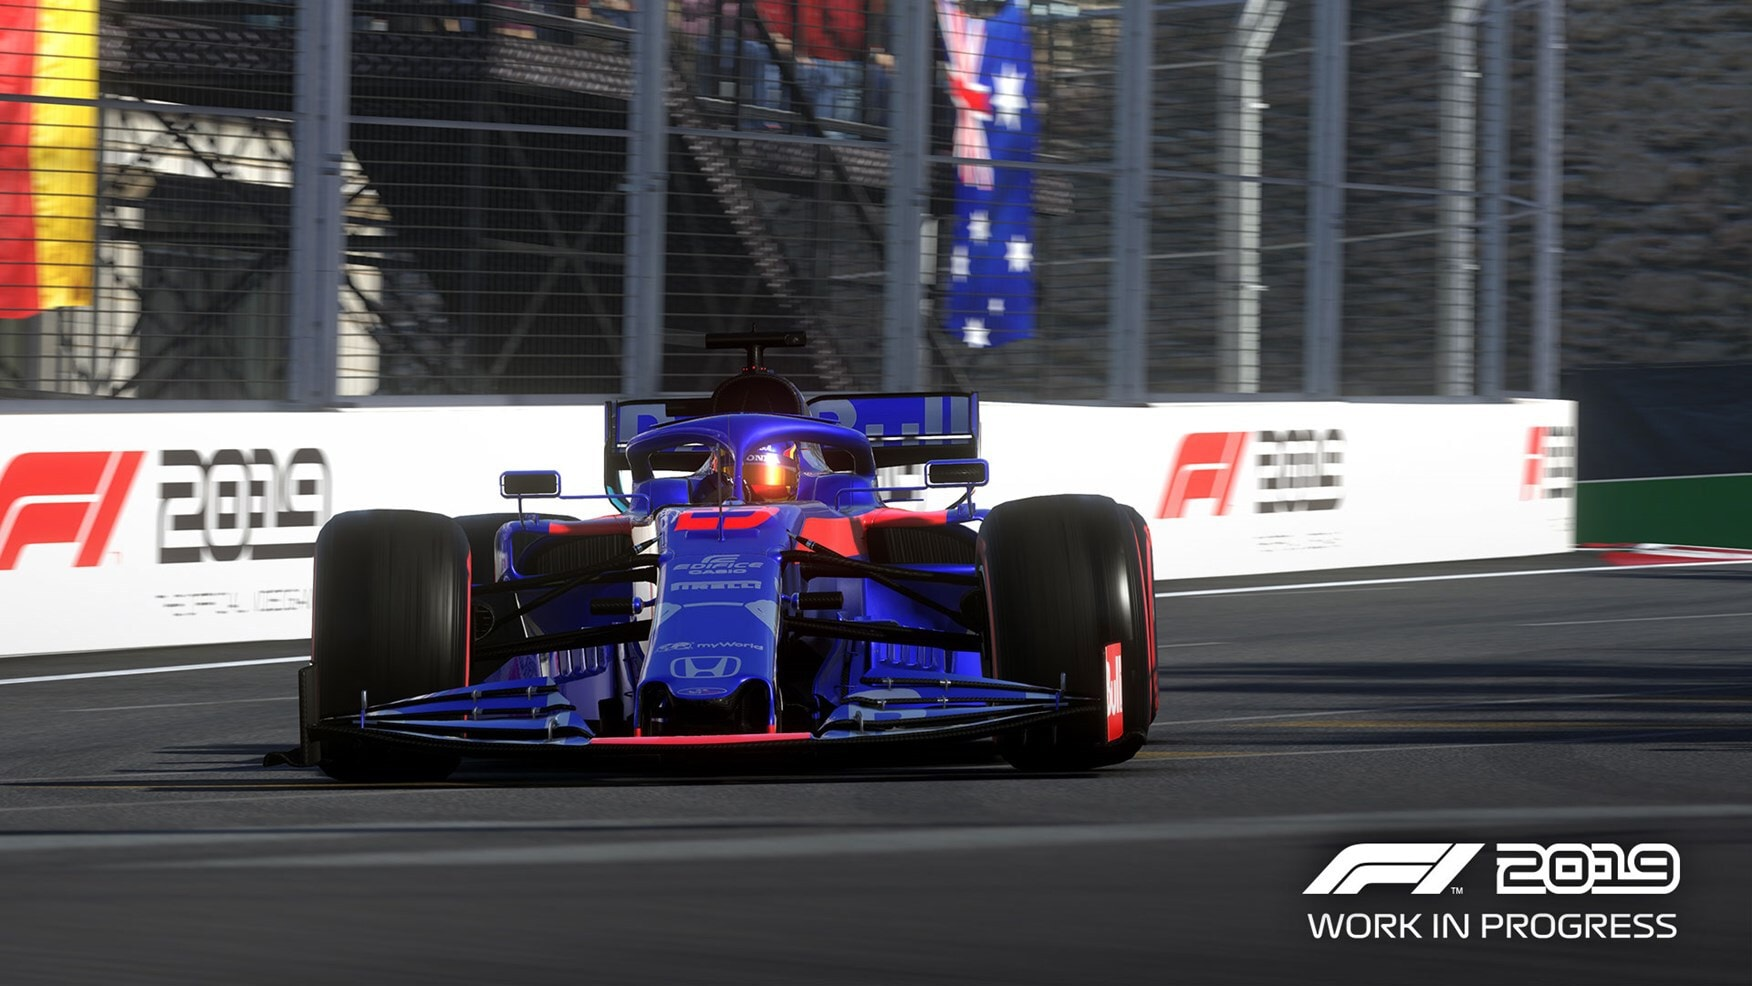 f1 2019 game preview 05